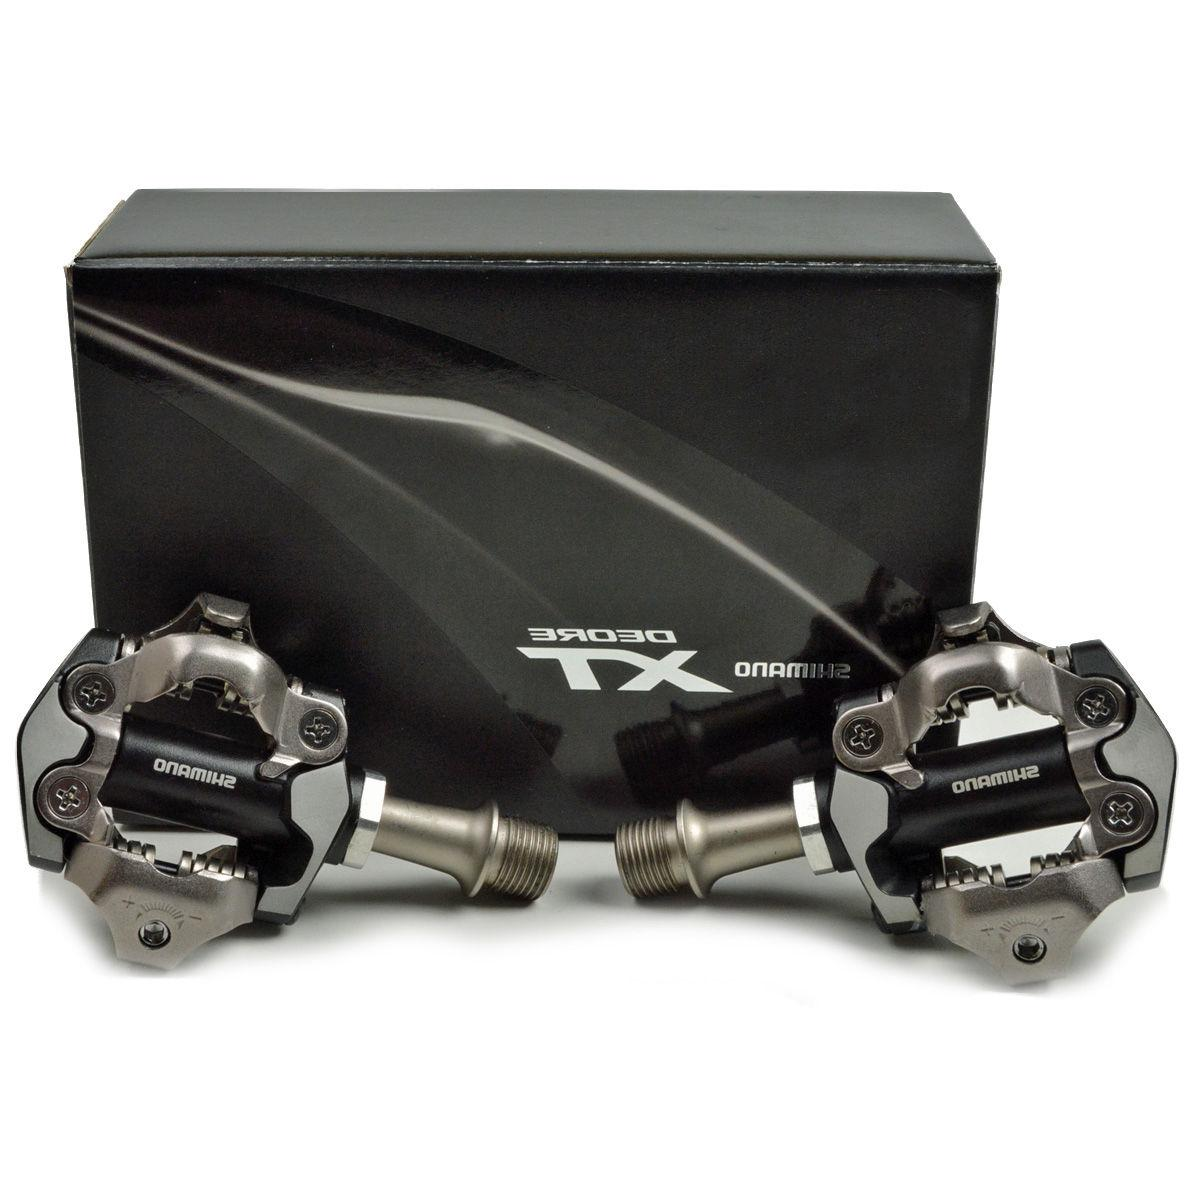 Shimano Deore XT PD-M8000 SPD MTB Mountain Bike Pedals Set New in Retail Box